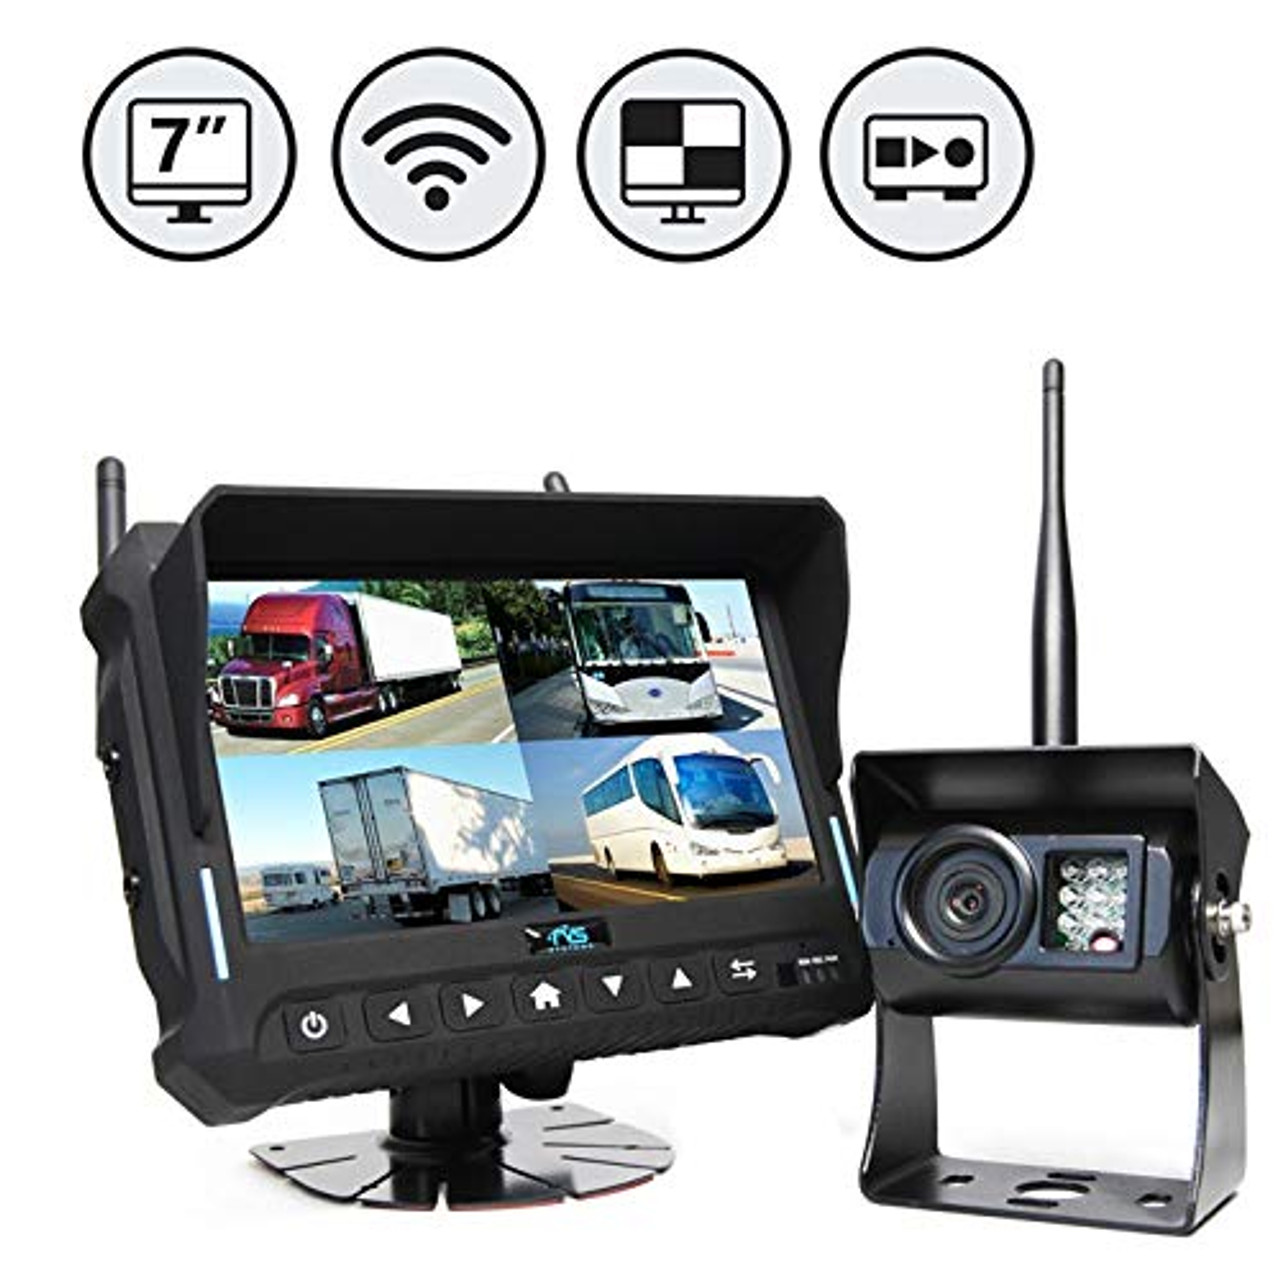 "7"" QV Monitor w/DVR, Both Side Cameras, RVS-Mount 